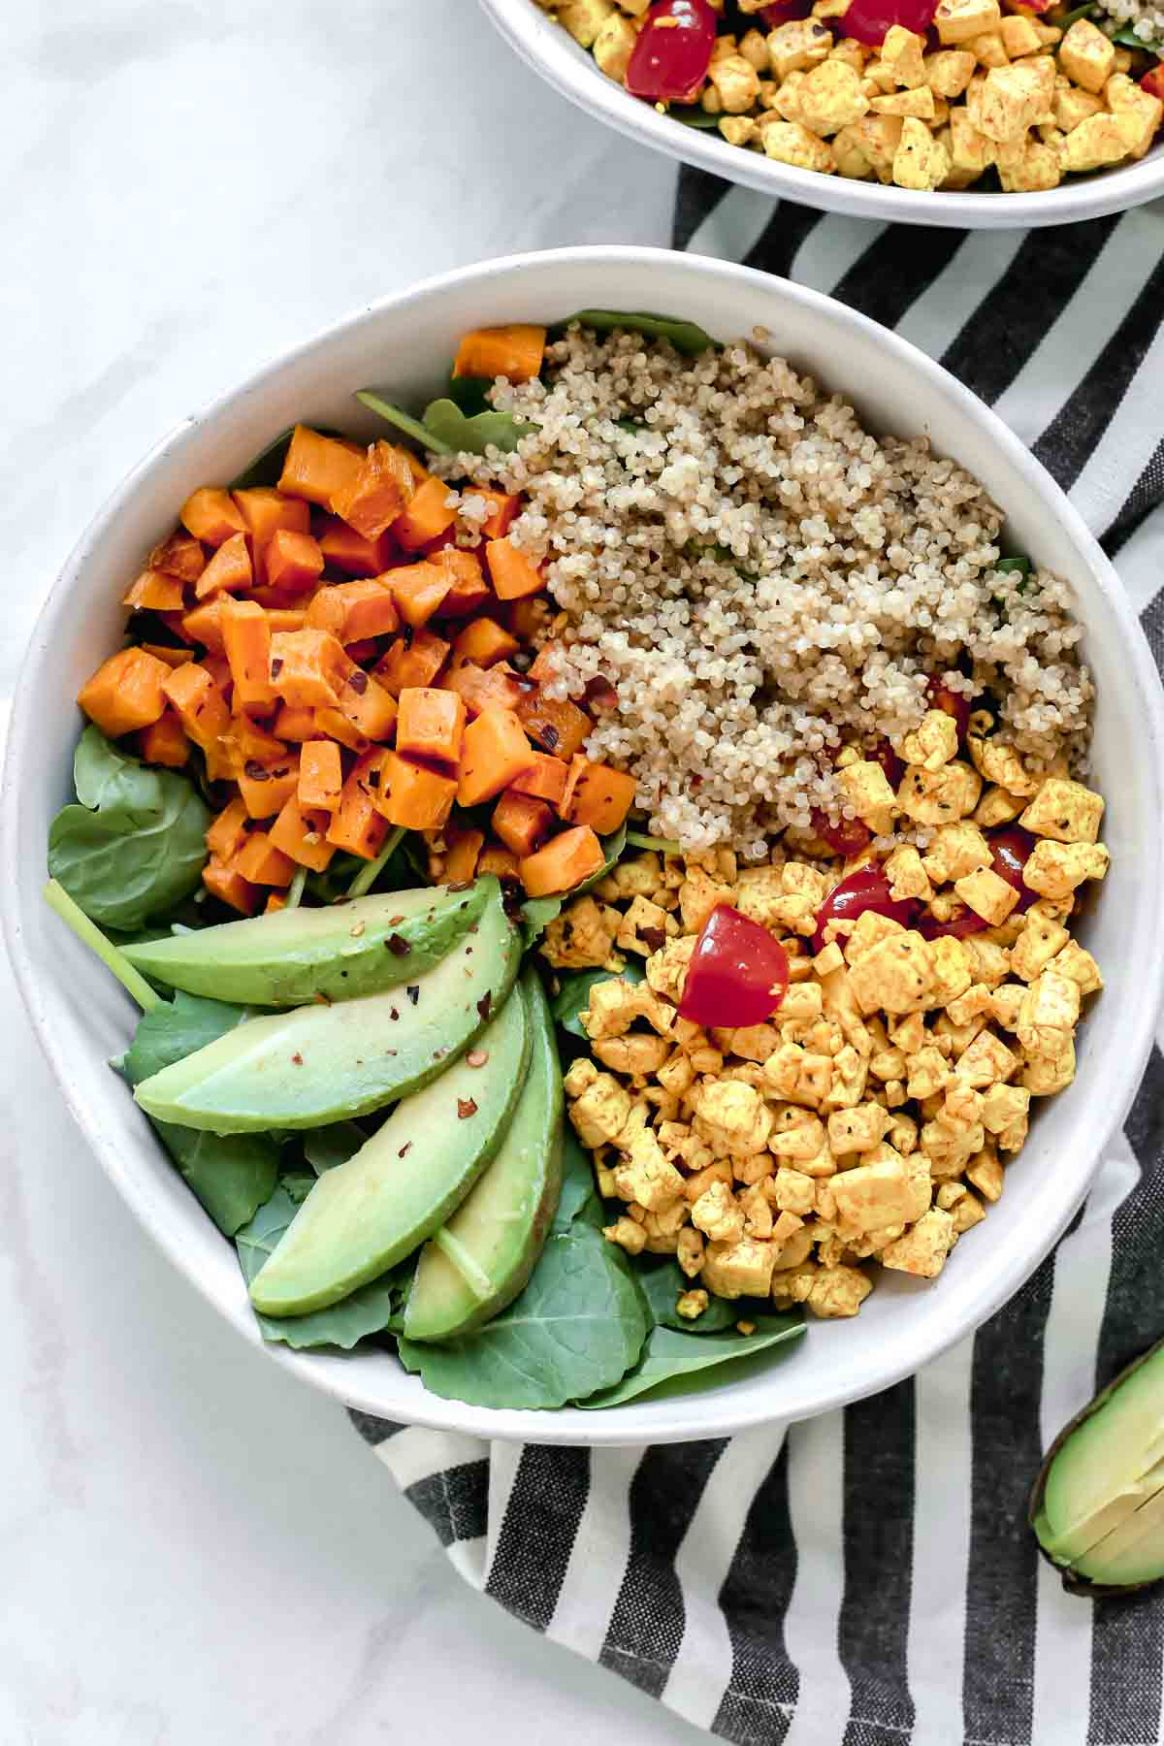 Tofu Scramble Vegan Breakfast Bowl - Breakfast Recipes Vegetarian